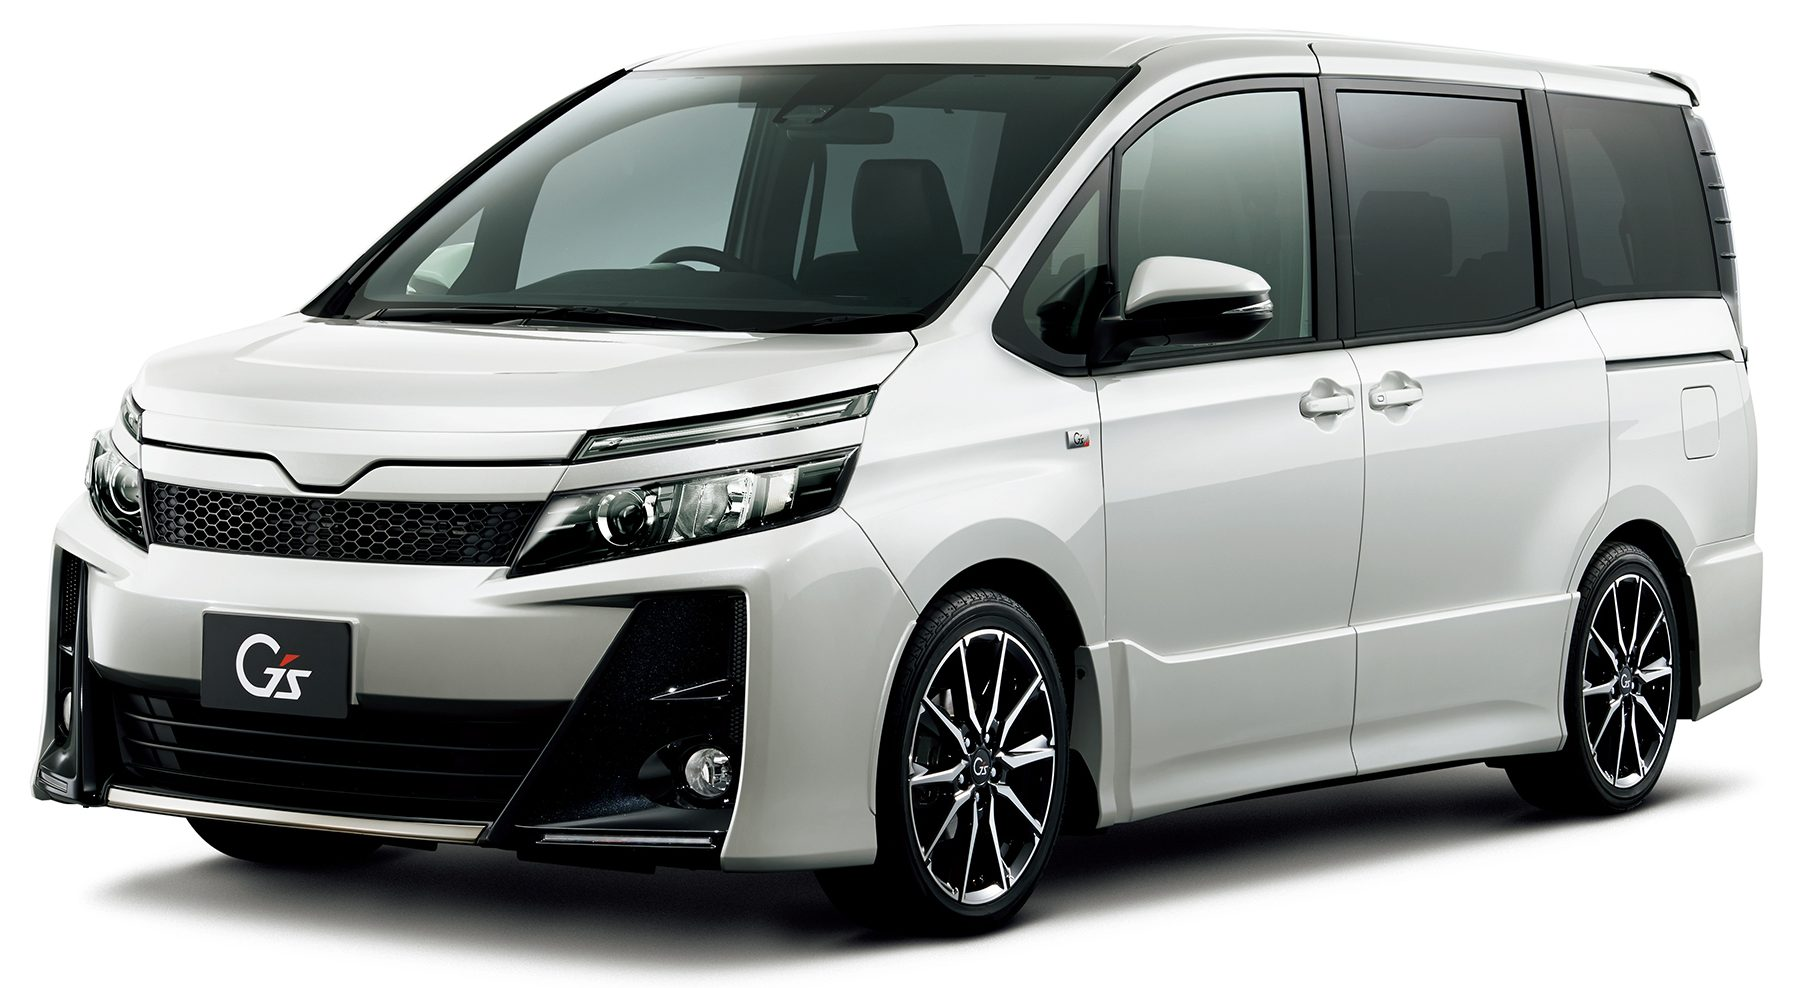 Toyota Noah and Voxy get Gazoo Racing G's treatment